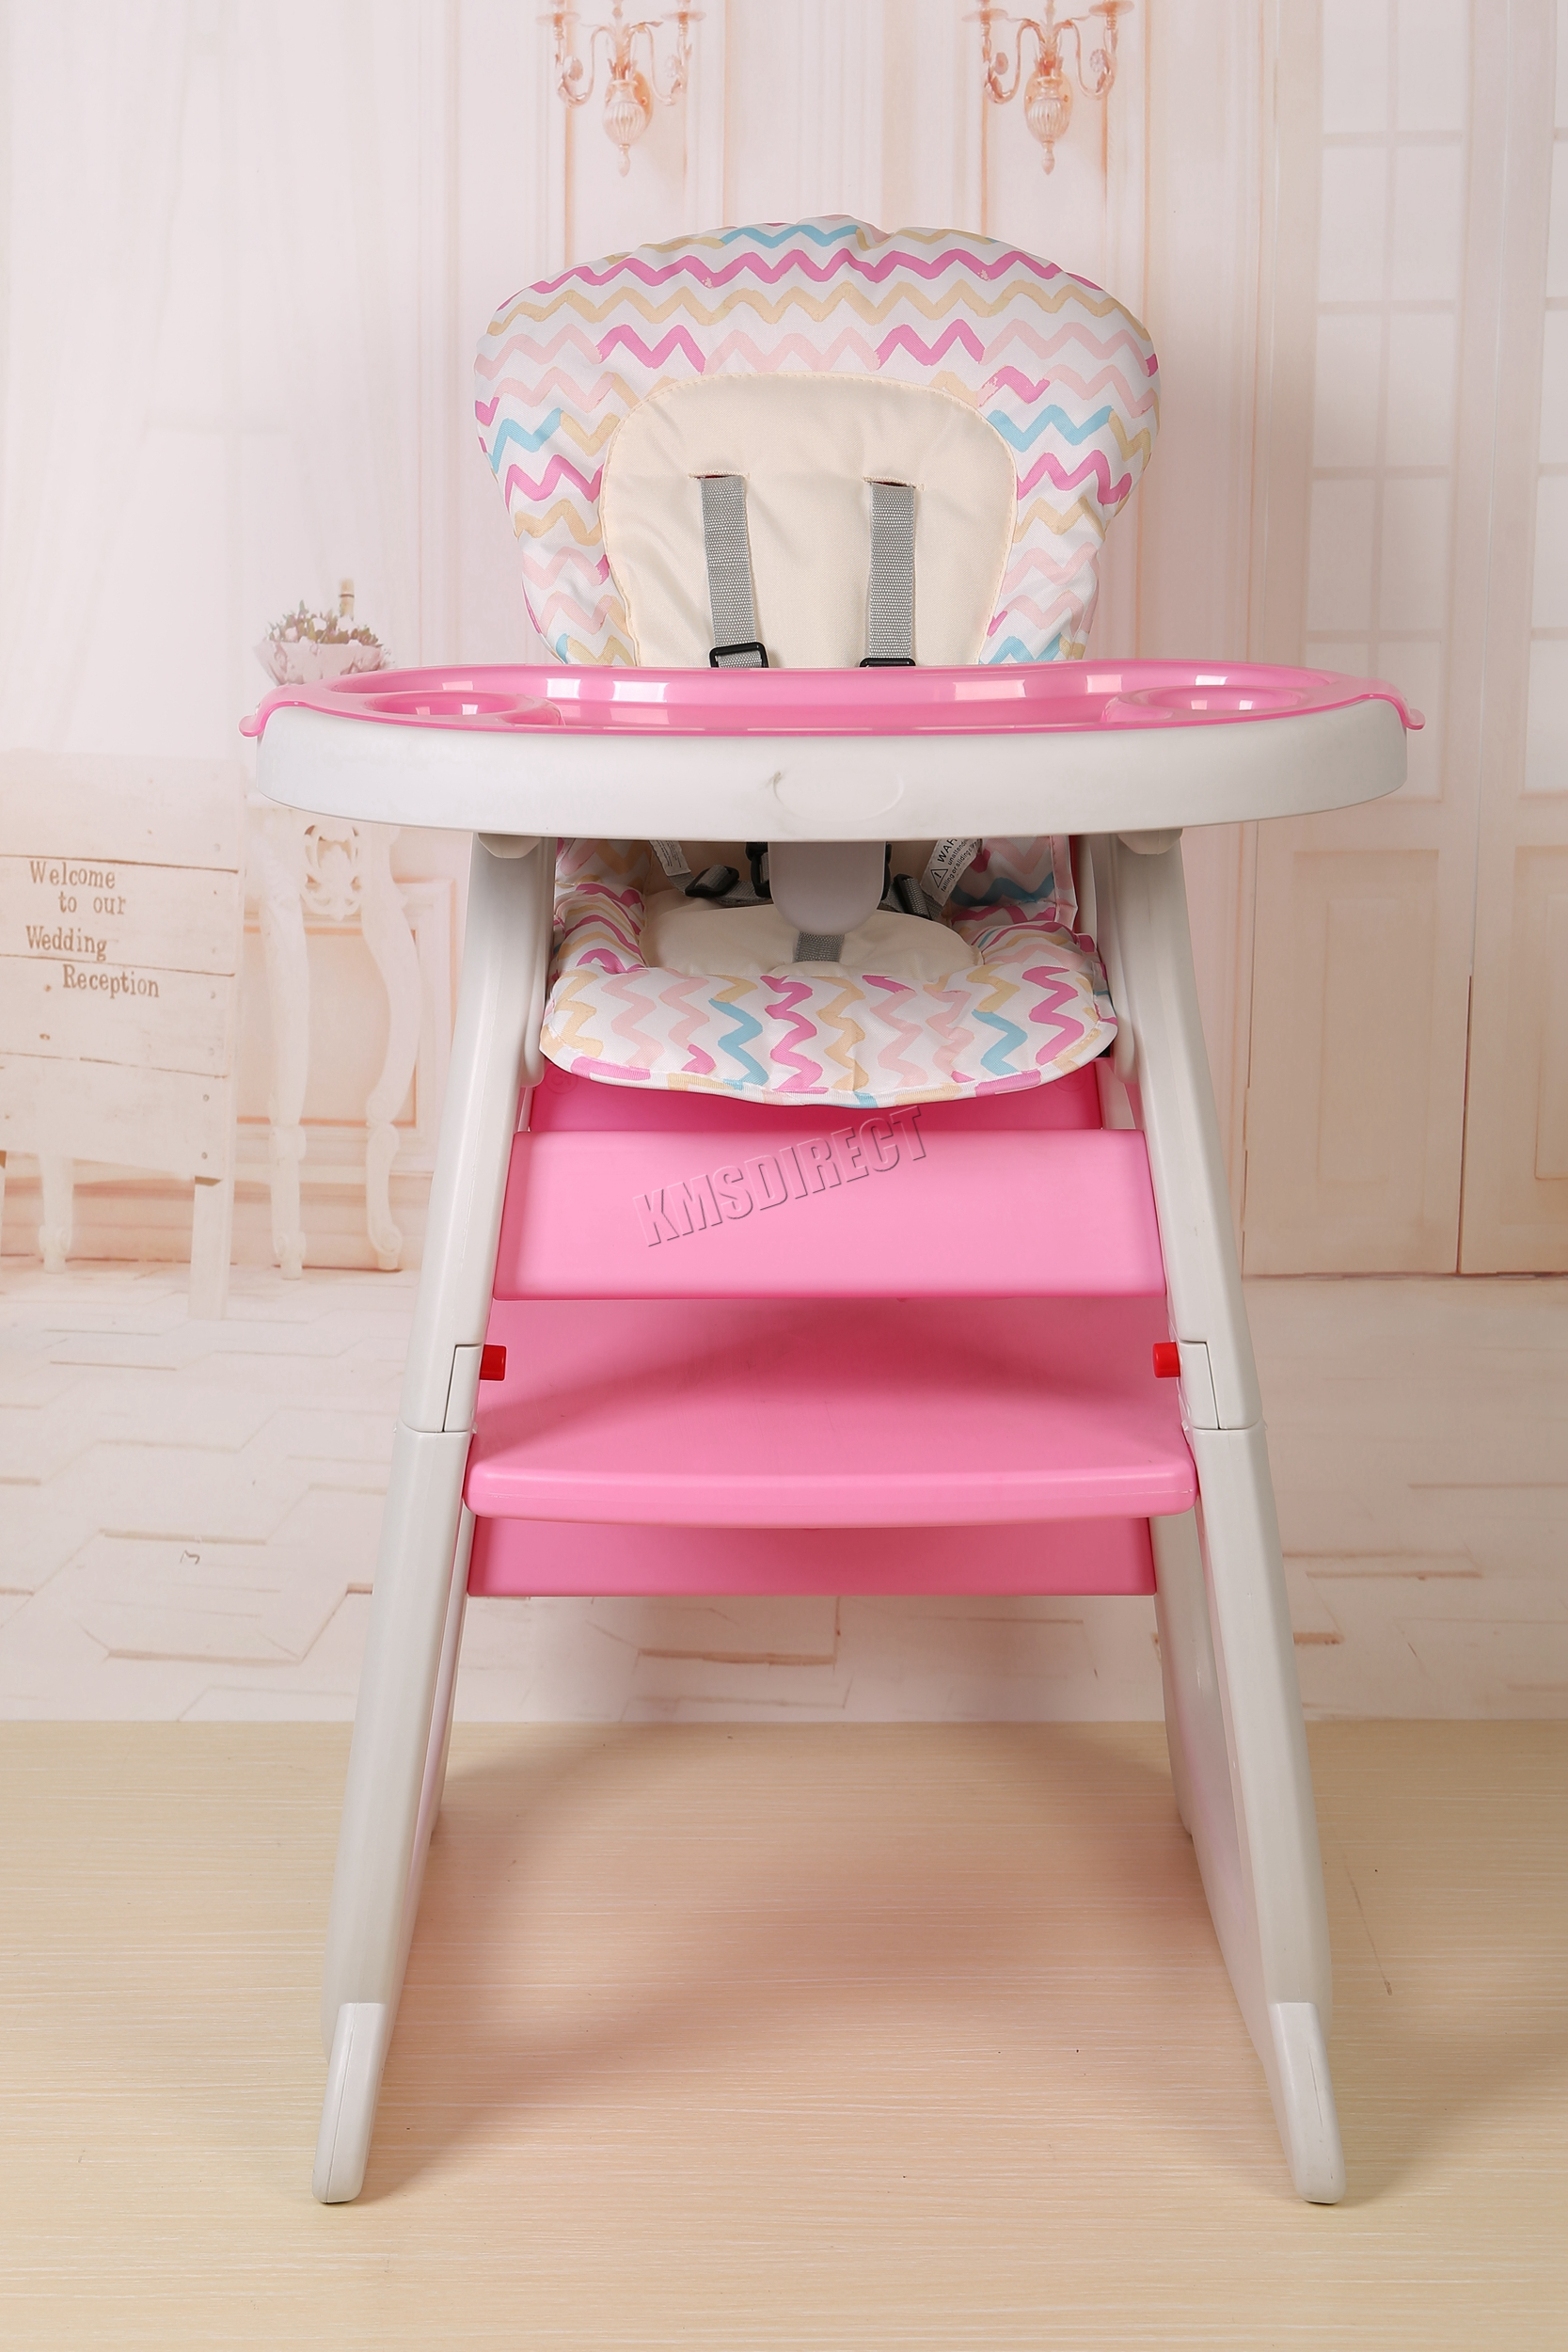 toddler high chair seat shower with wheels and removable arms foxhunter baby highchair infant feeding 3in1